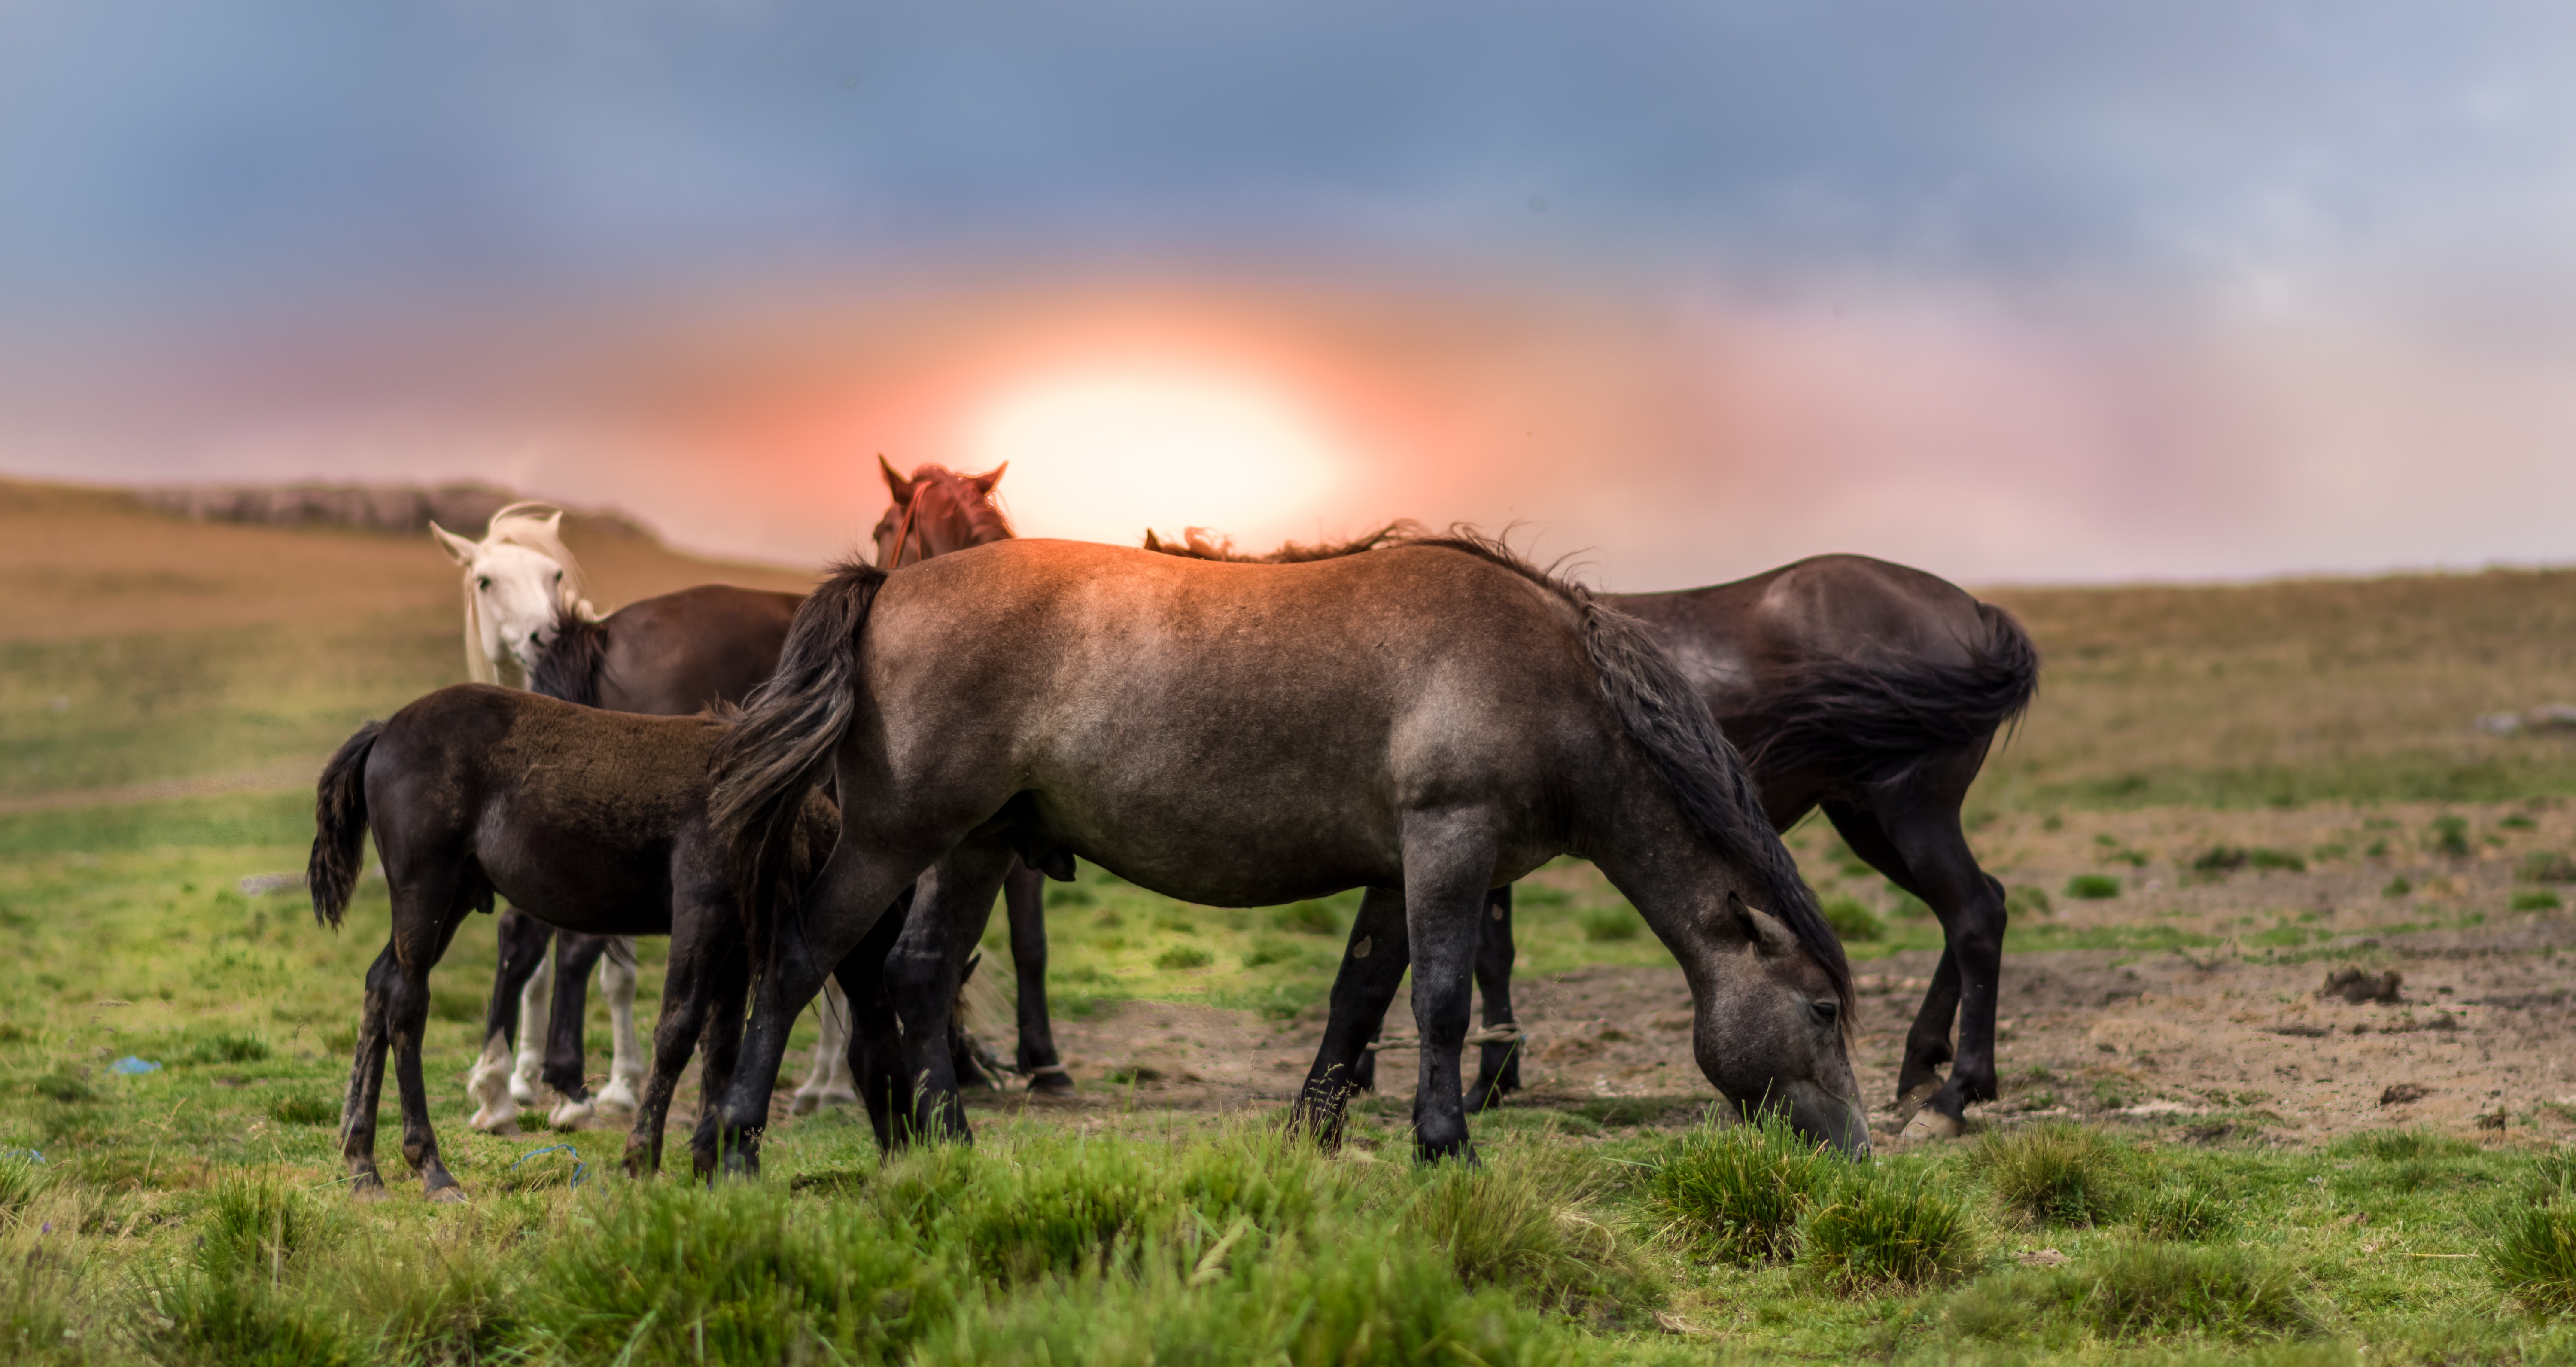 A herd of foals and adult horses standing close to each other and grazing on a hill during sunset